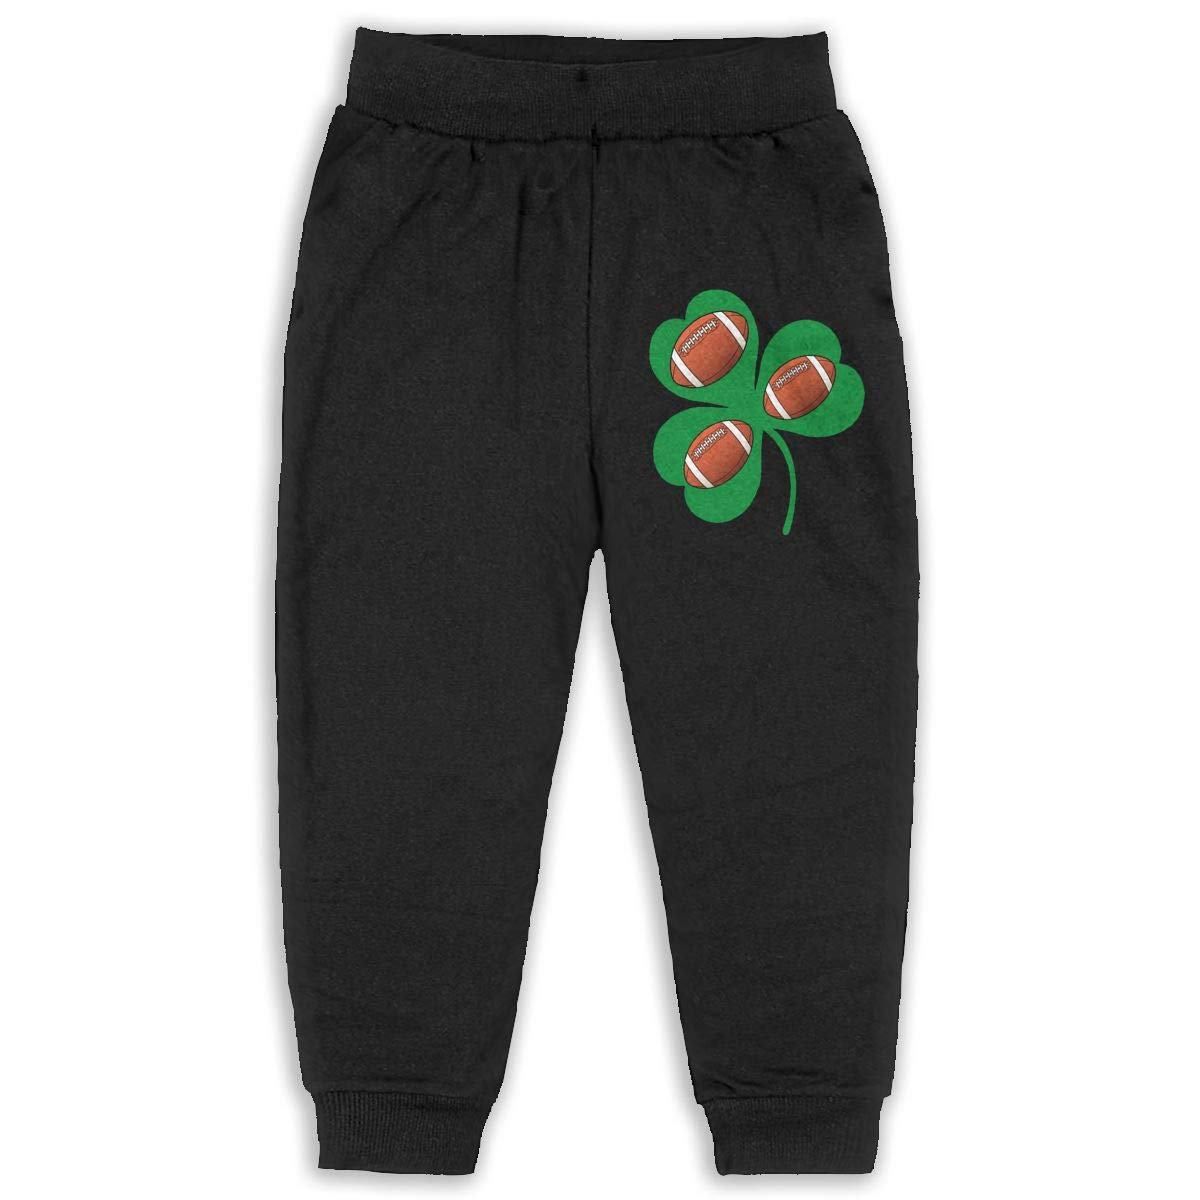 Udyi/&Jln-97 Green Irish Shamrock Football Unisex Kid Toddler Sweatpants Soft Cozy Girls Boys Jersey Pant